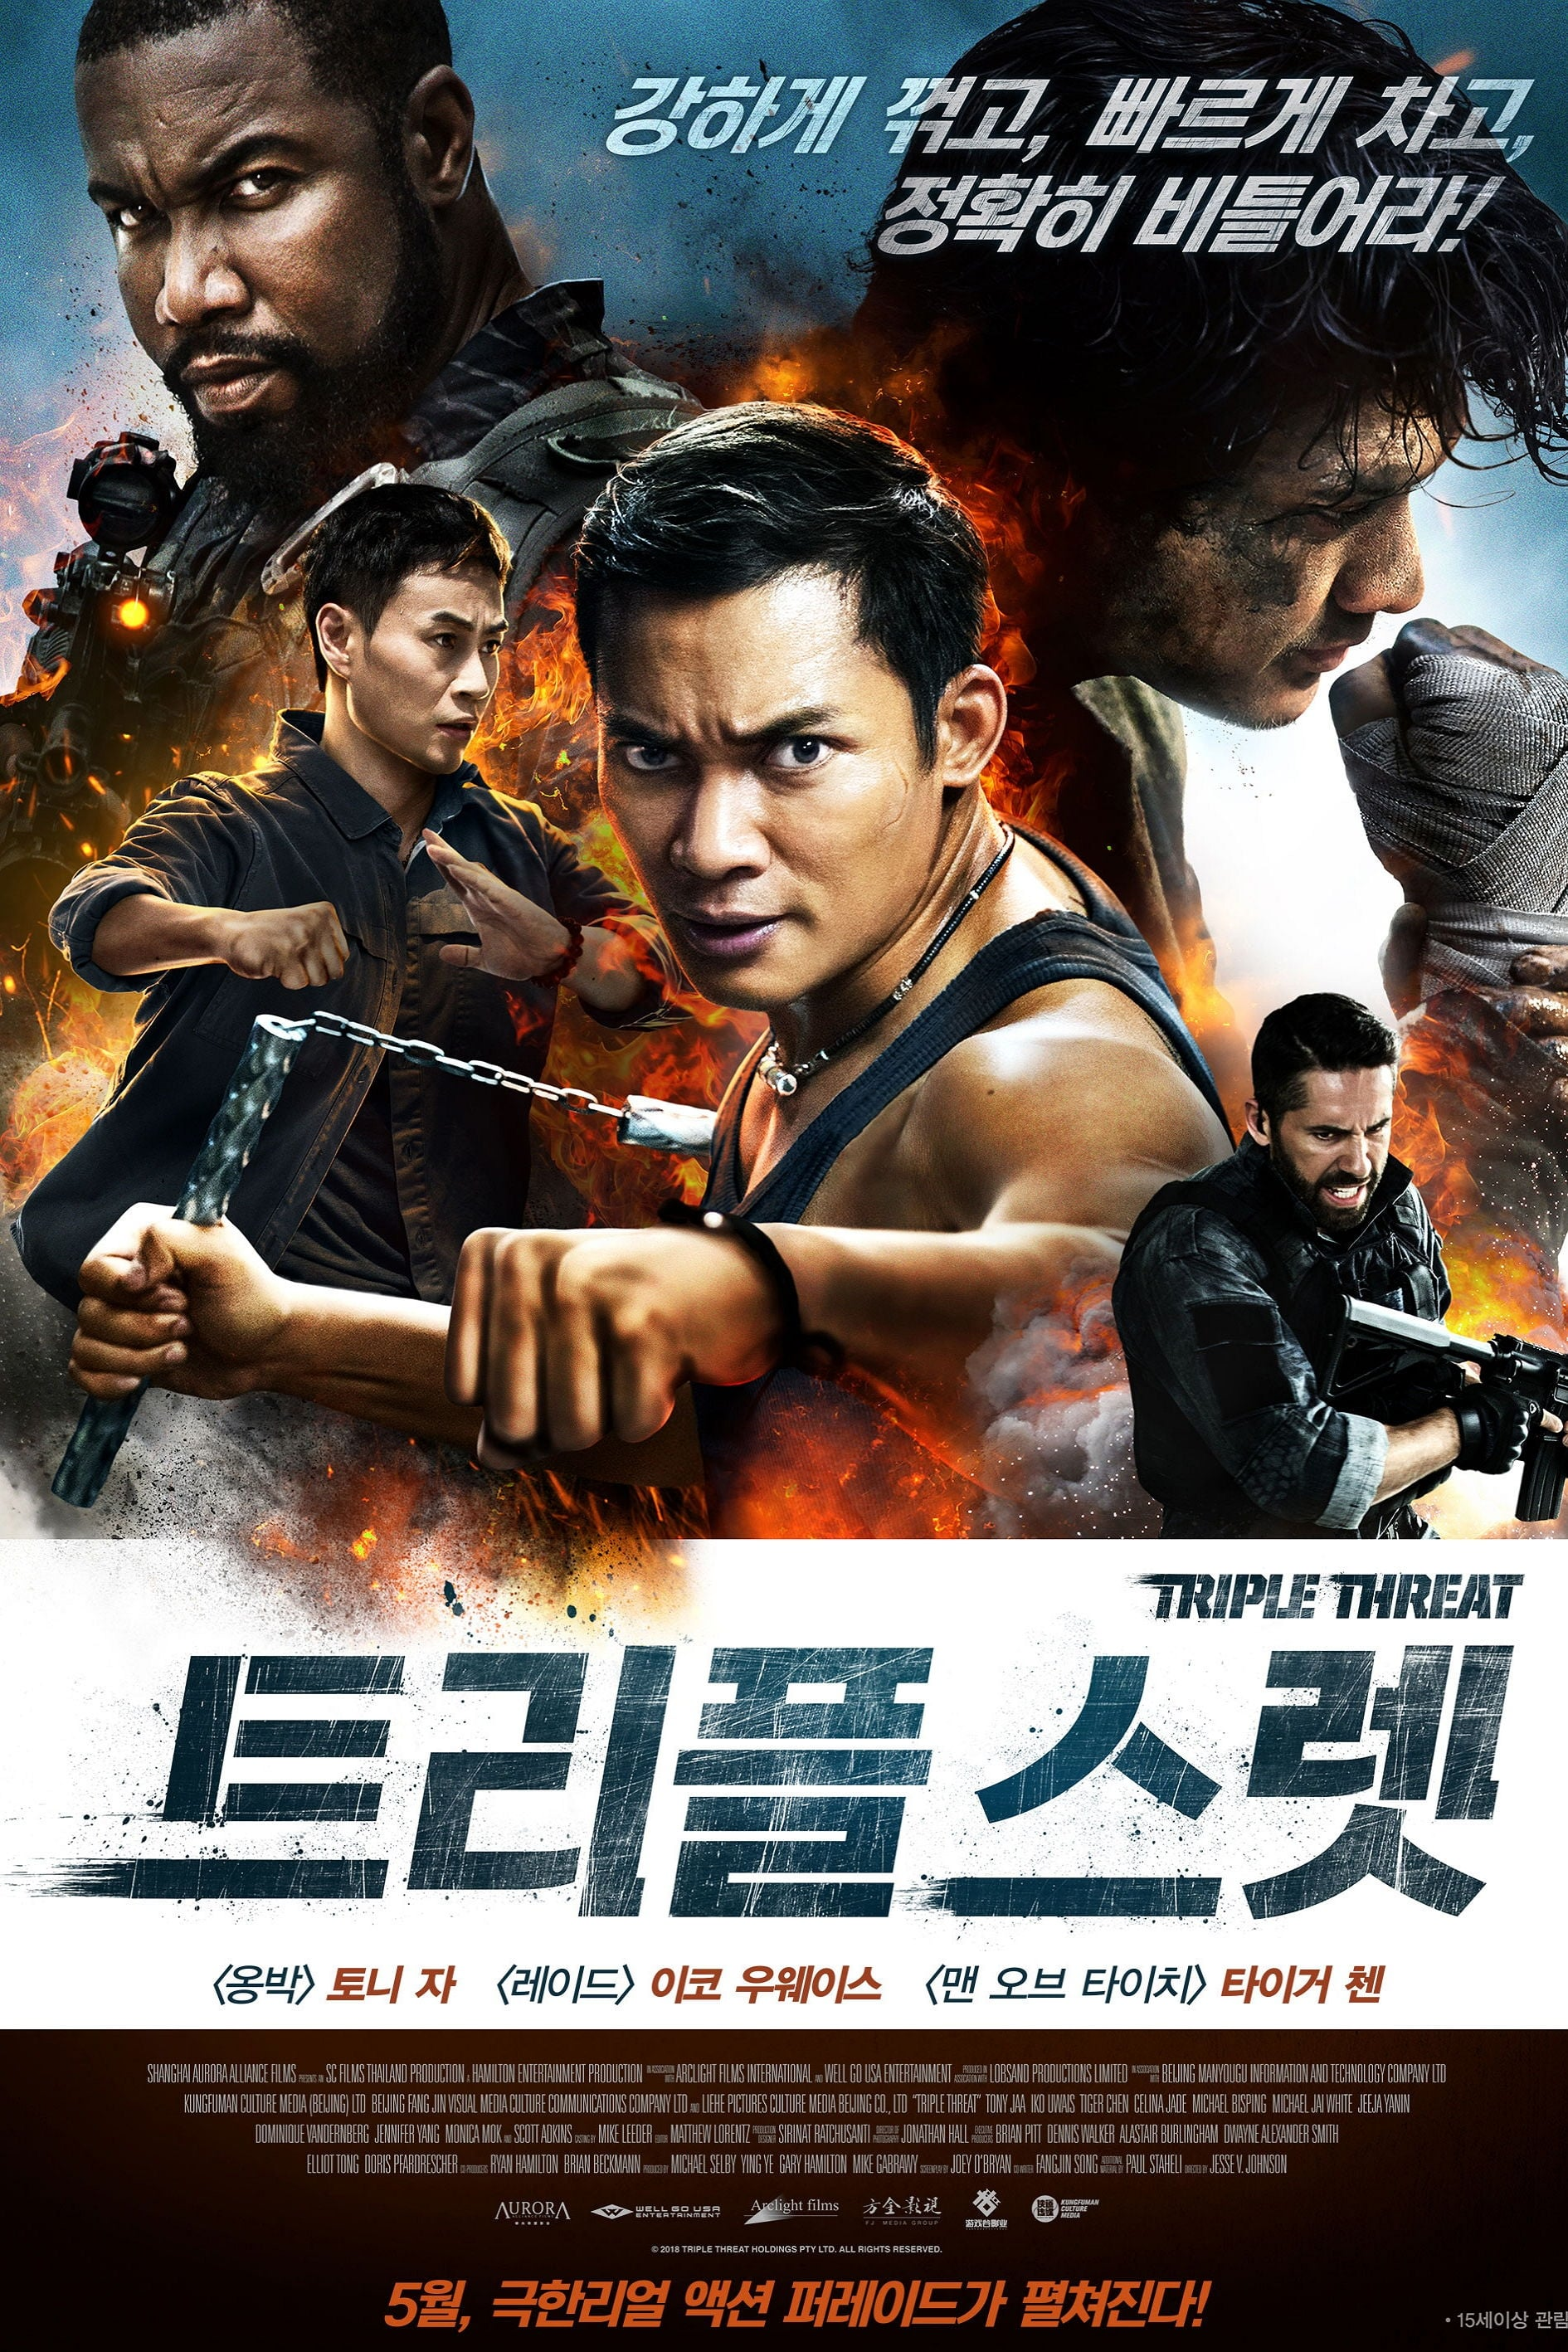 triple threat  2019  streaming vf film complet en fran u00e7ais